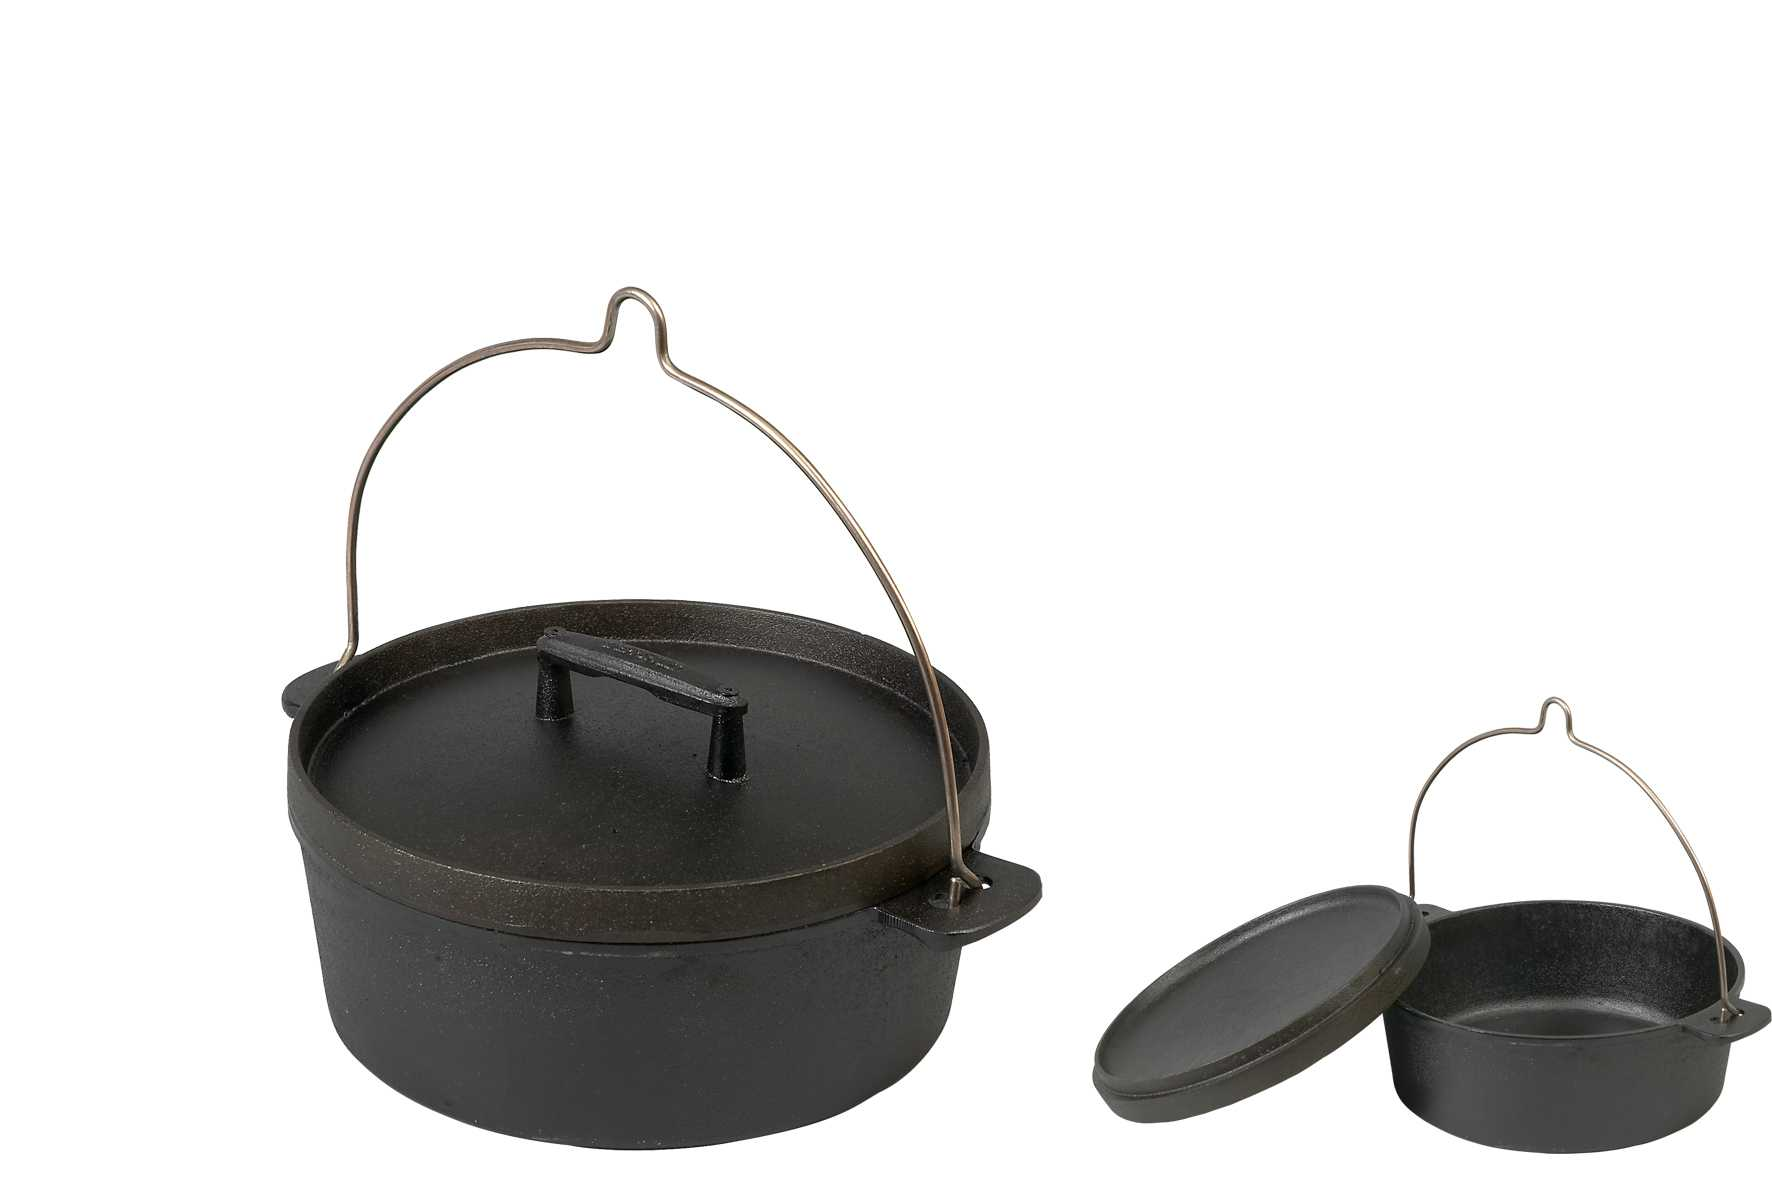 dutch oven skepphult gusseisen topf f r grill und lagerfeuer. Black Bedroom Furniture Sets. Home Design Ideas